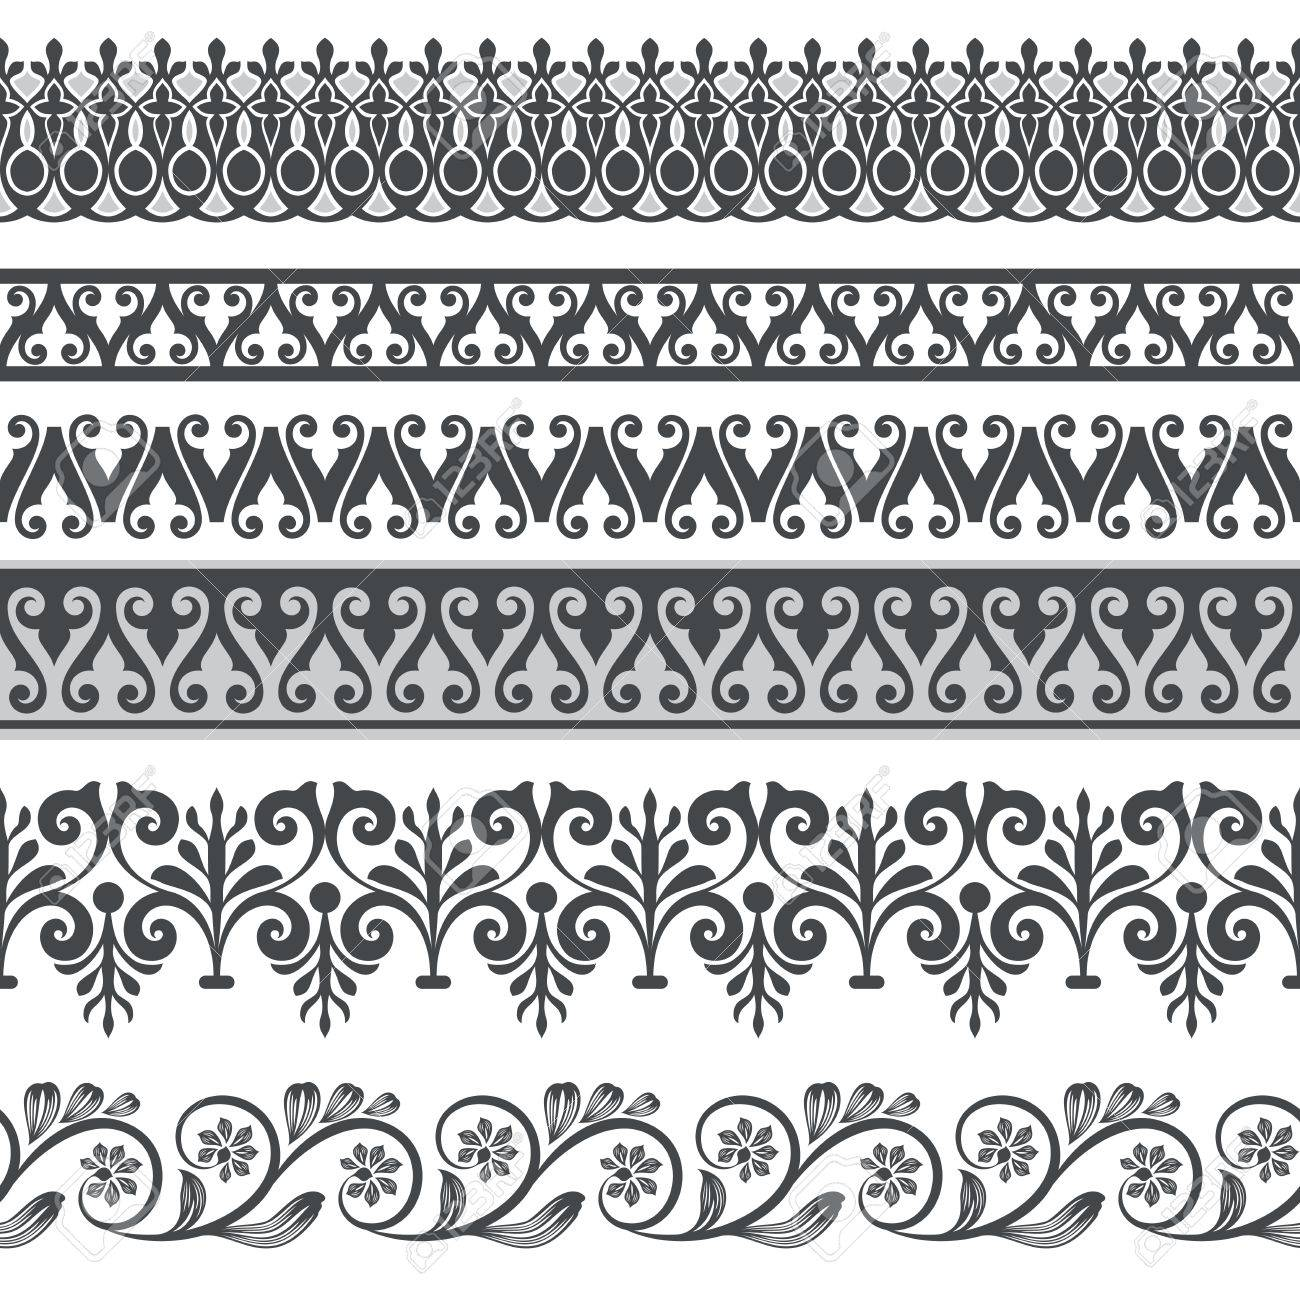 seamless floral border vector template ornament repeating divider rh 123rf com floral border vector vintage floral border vector png